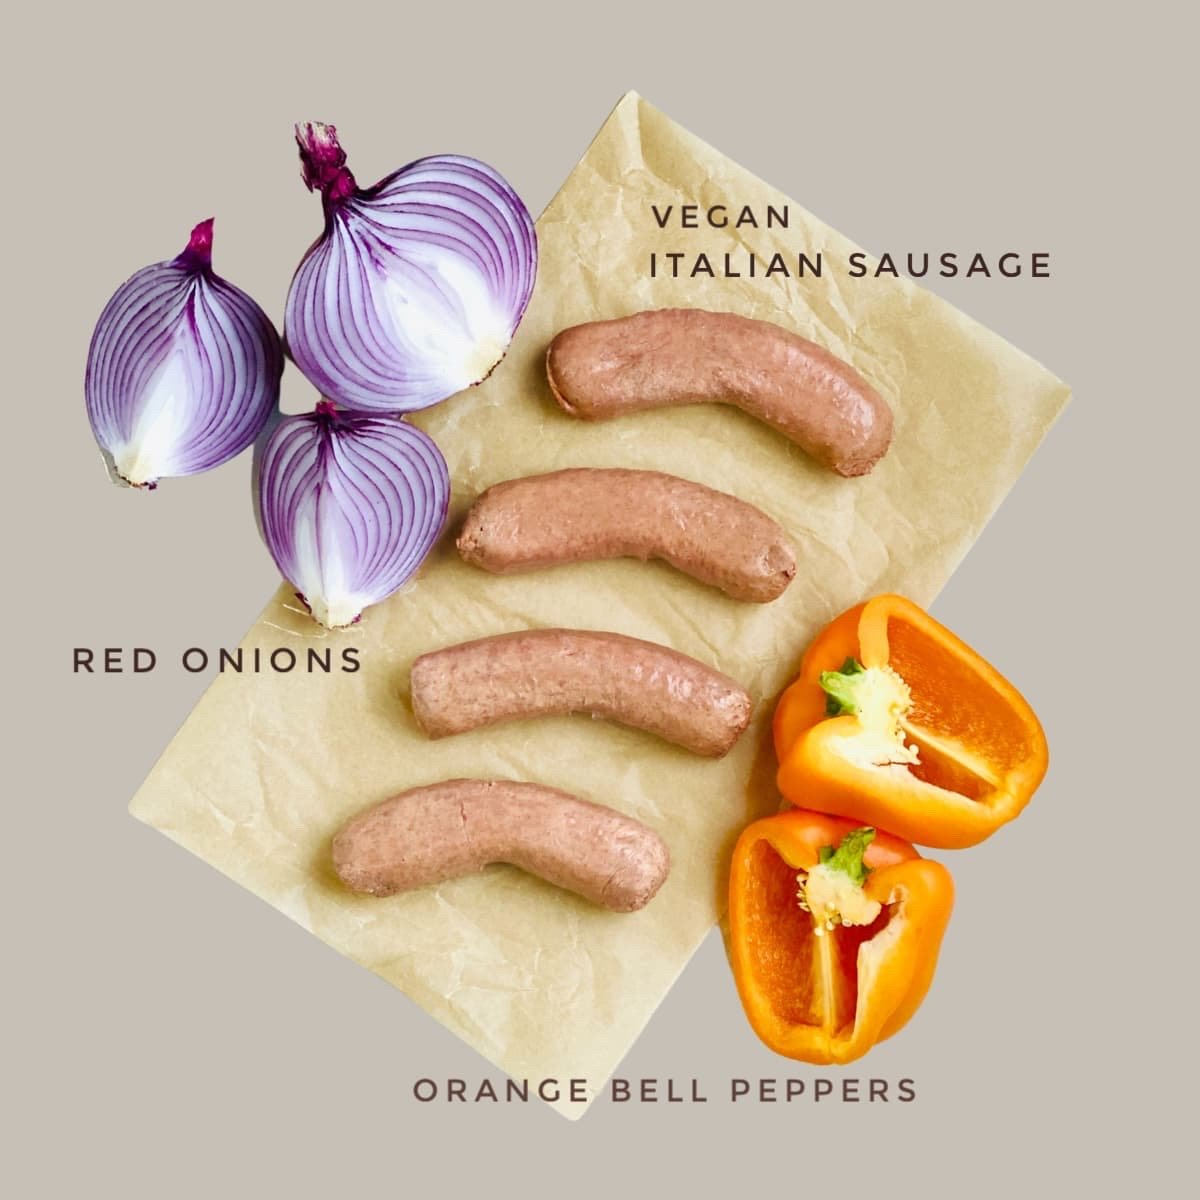 Ingredients For Vegan Italian Sausage, Peppers And Onions